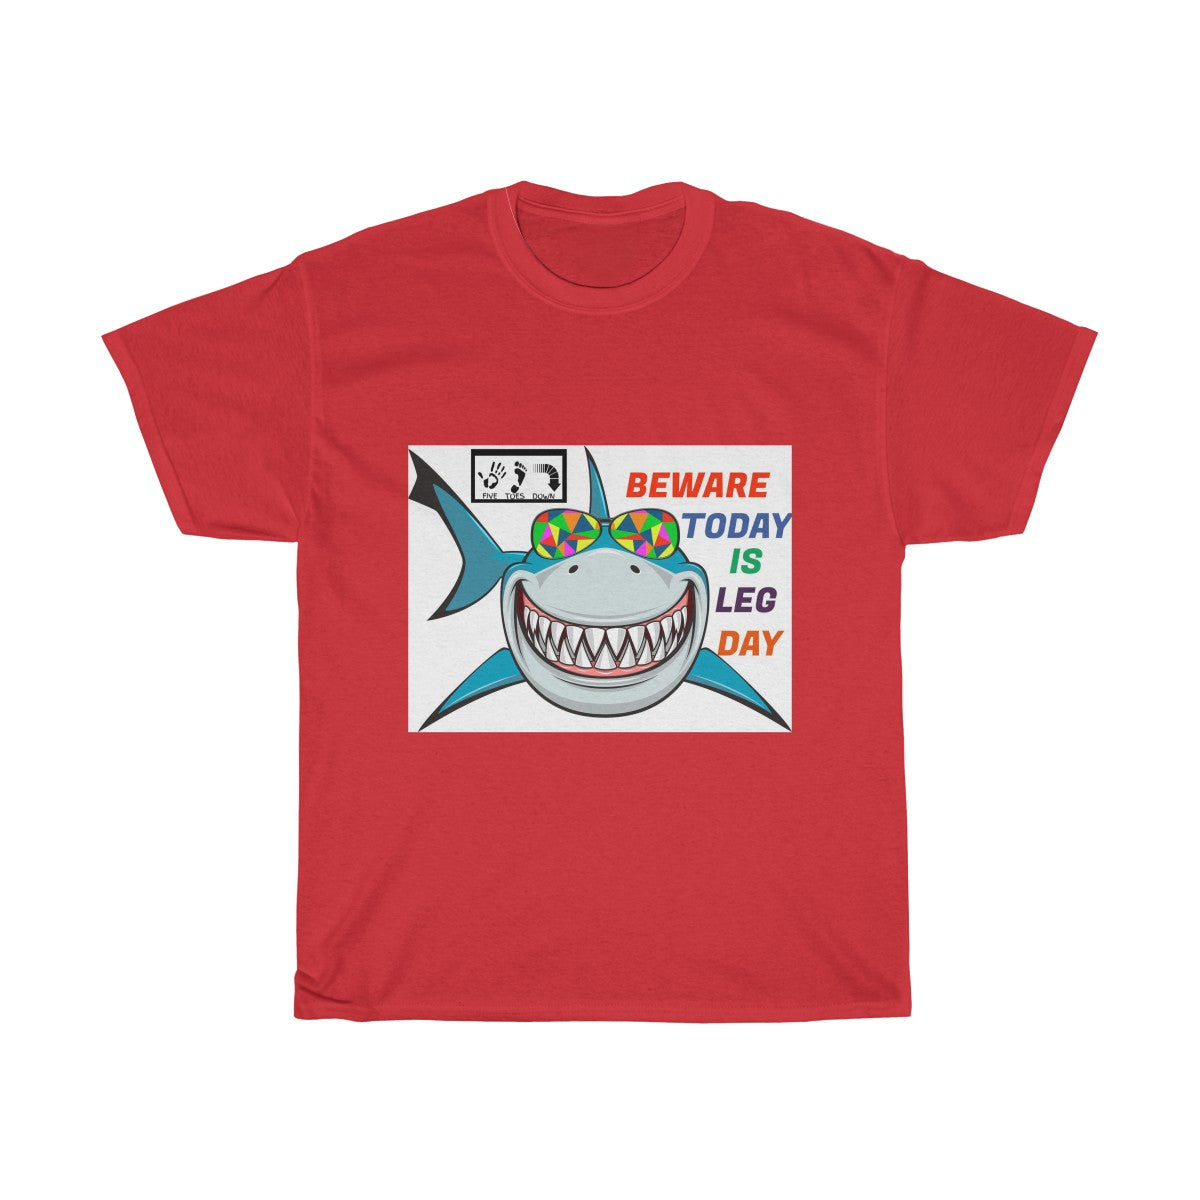 Five Toes Down Shark Attack Unisex Tee